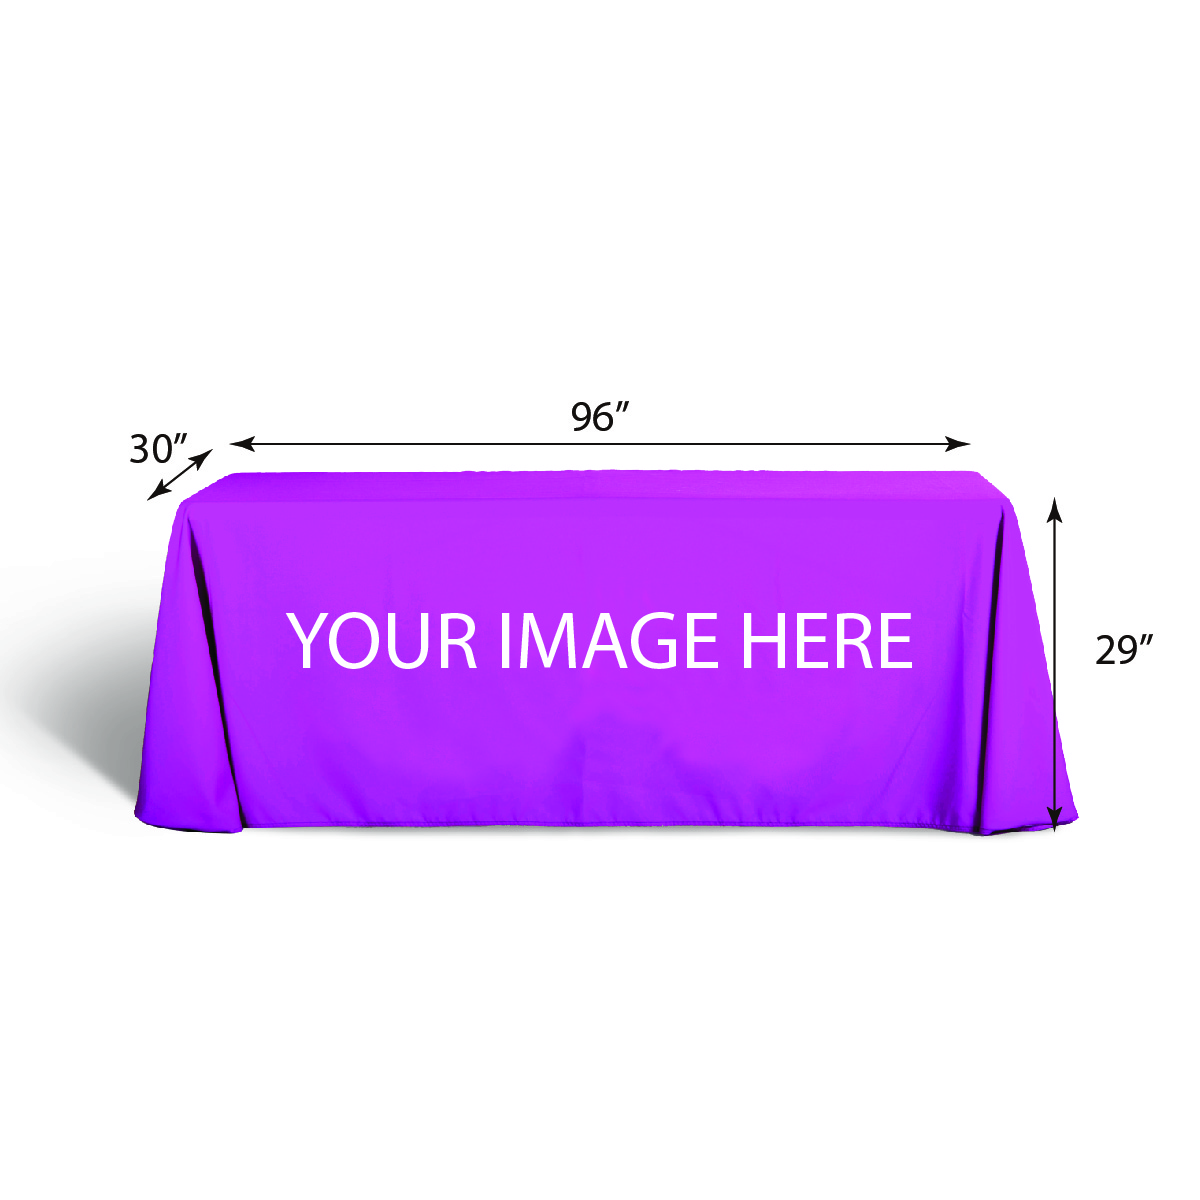 8' Draped Table Covers